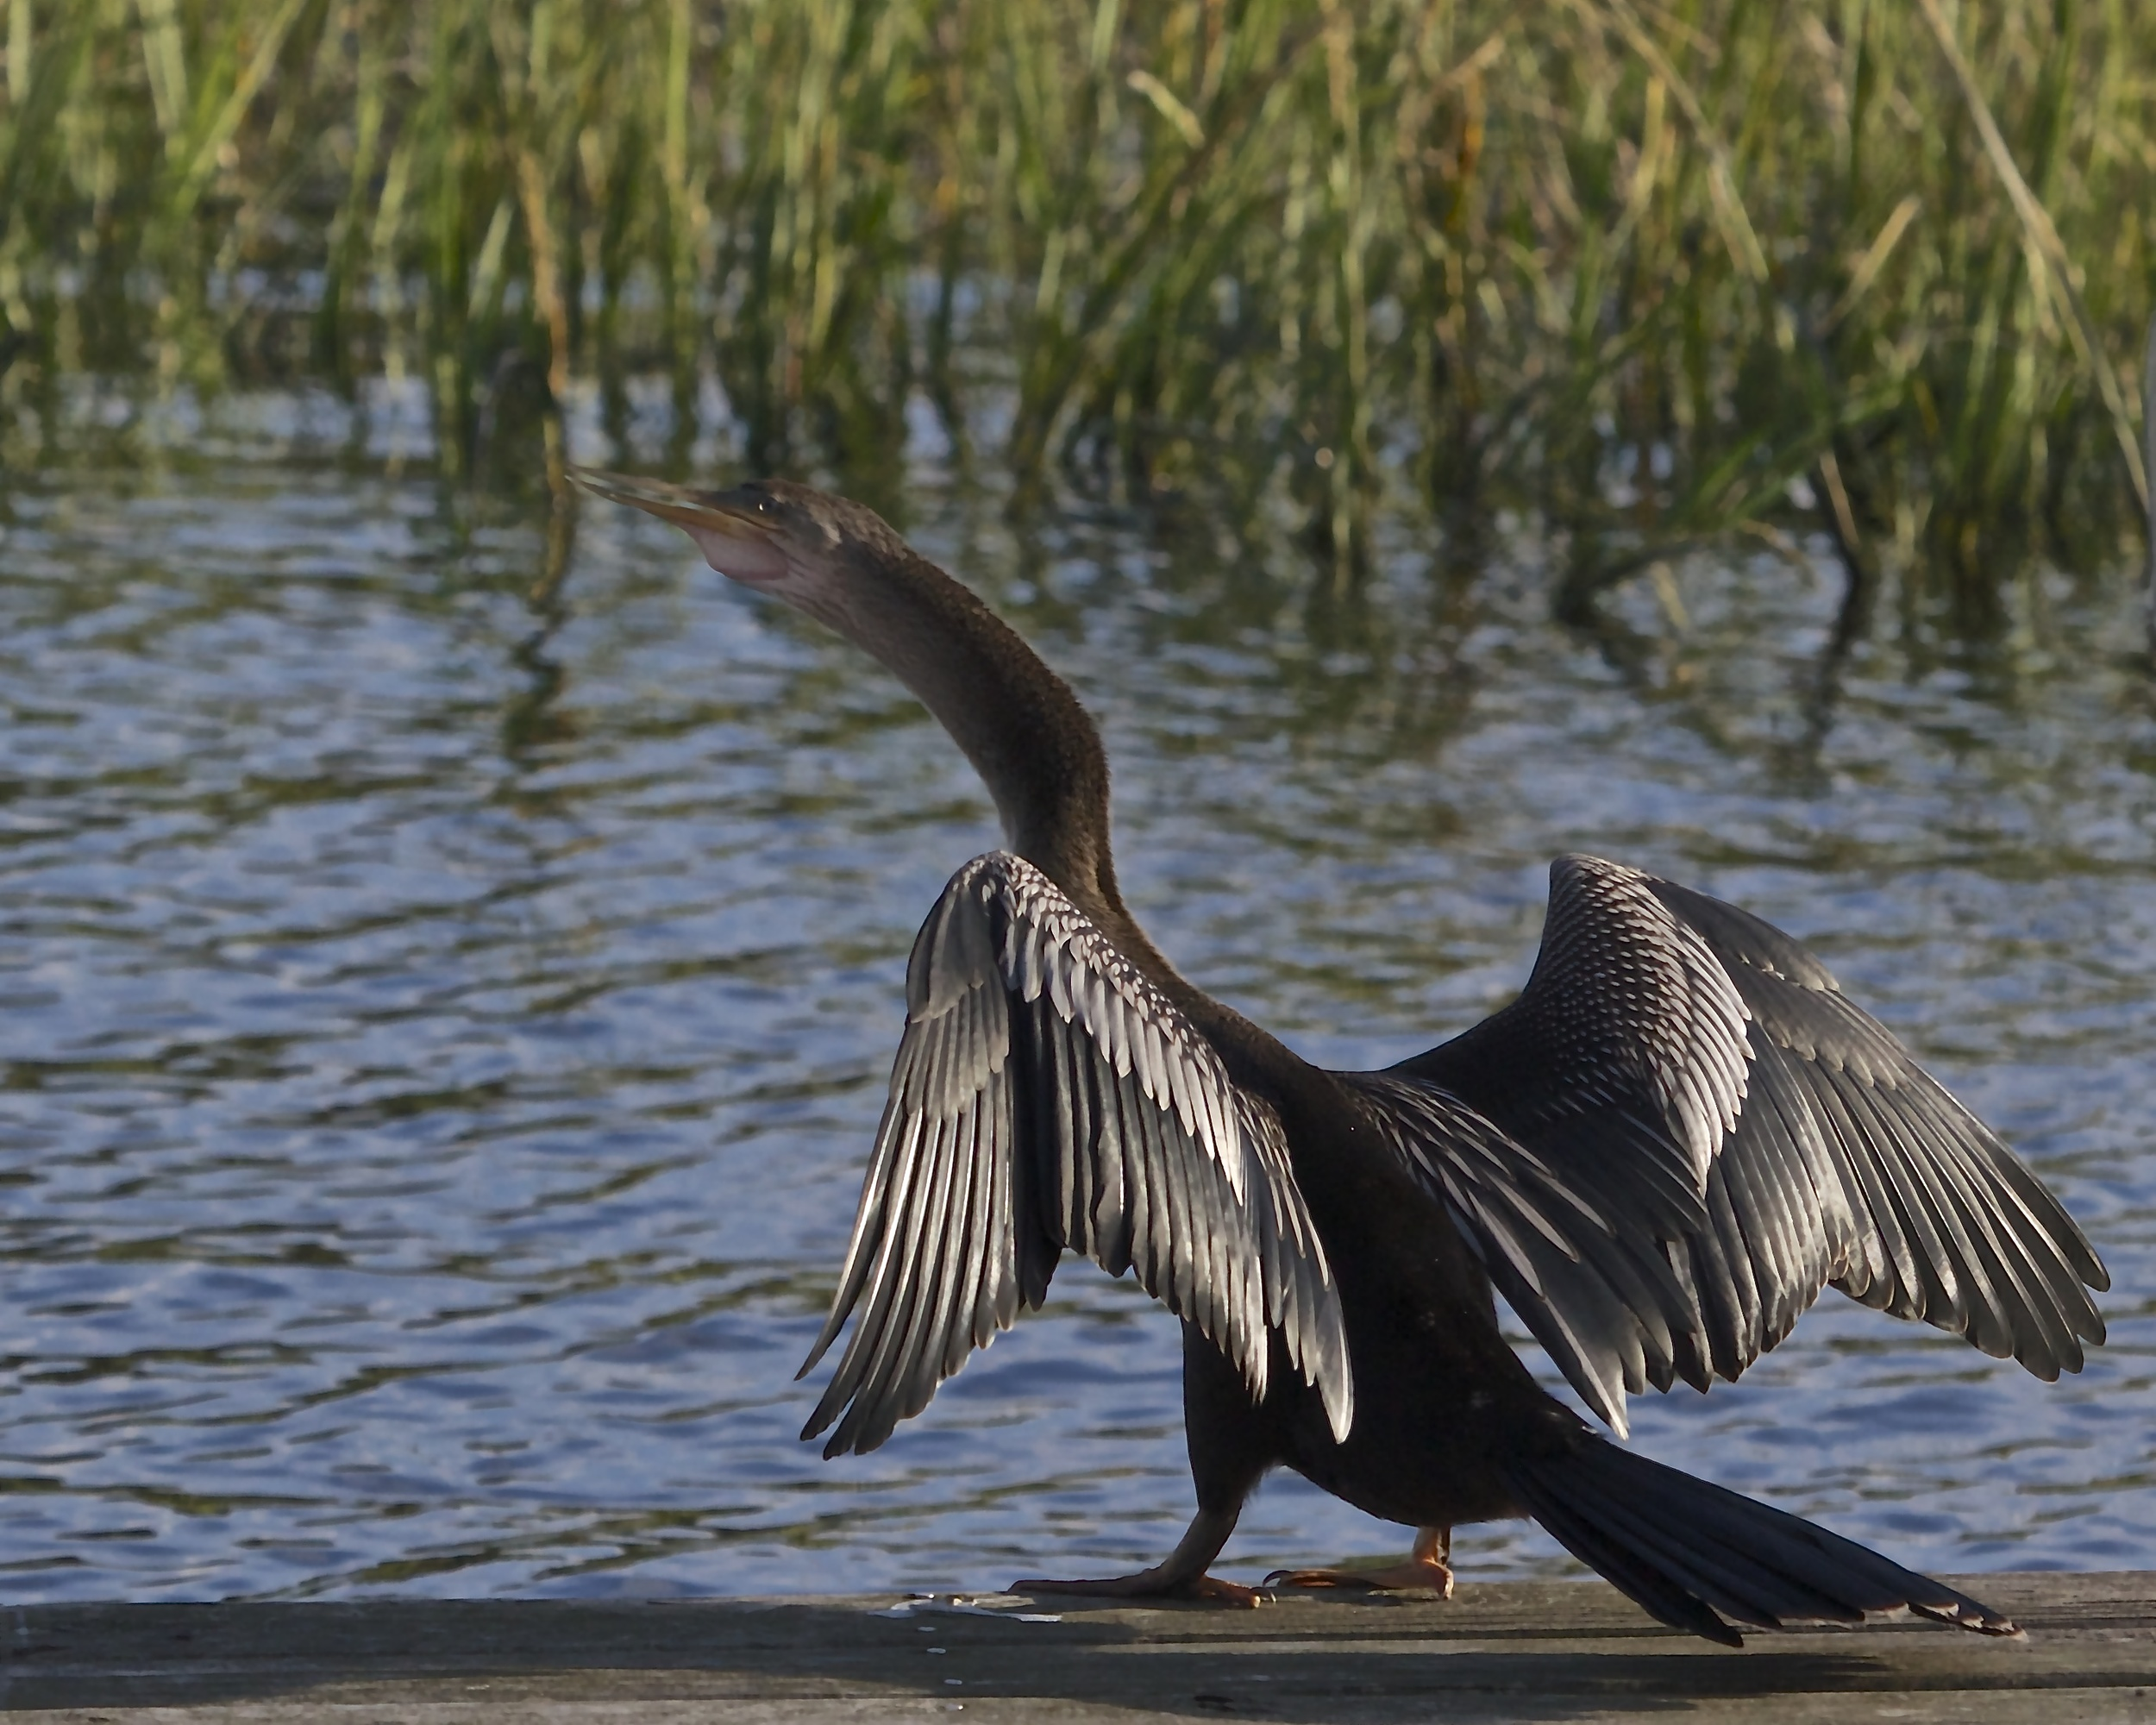 Can't fly, might as well get some sun! Annie the Anhinga dries out on the dock.